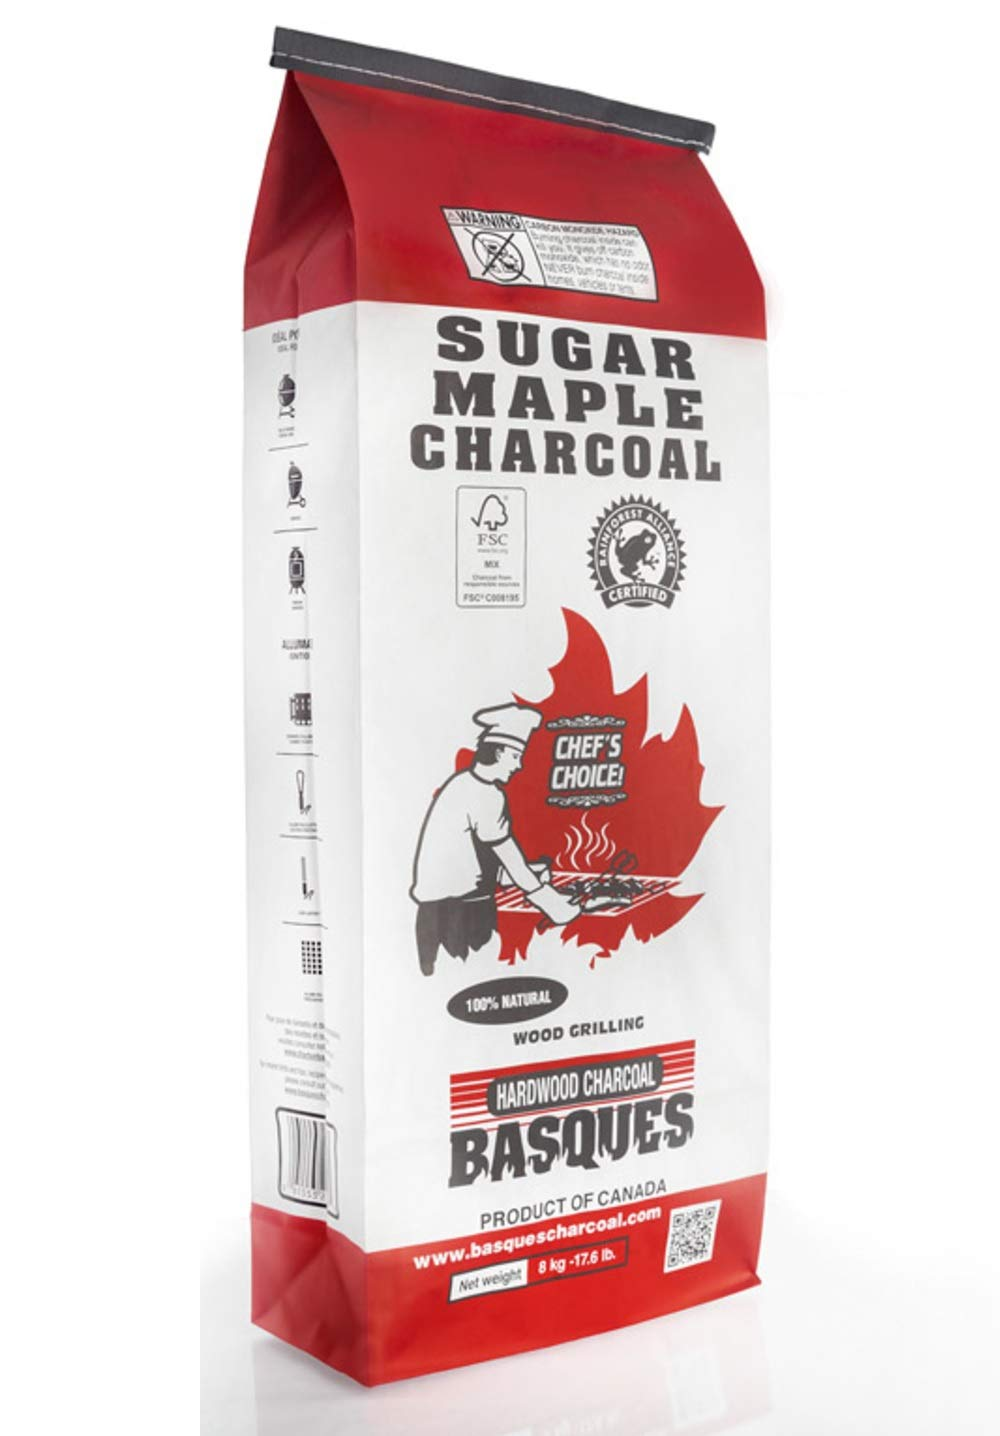 Basques Hardwood Chacoa 61553 Sugar Maple Lump Charcoal, 17.6 Lbs by Basques Hardwood Chacoal